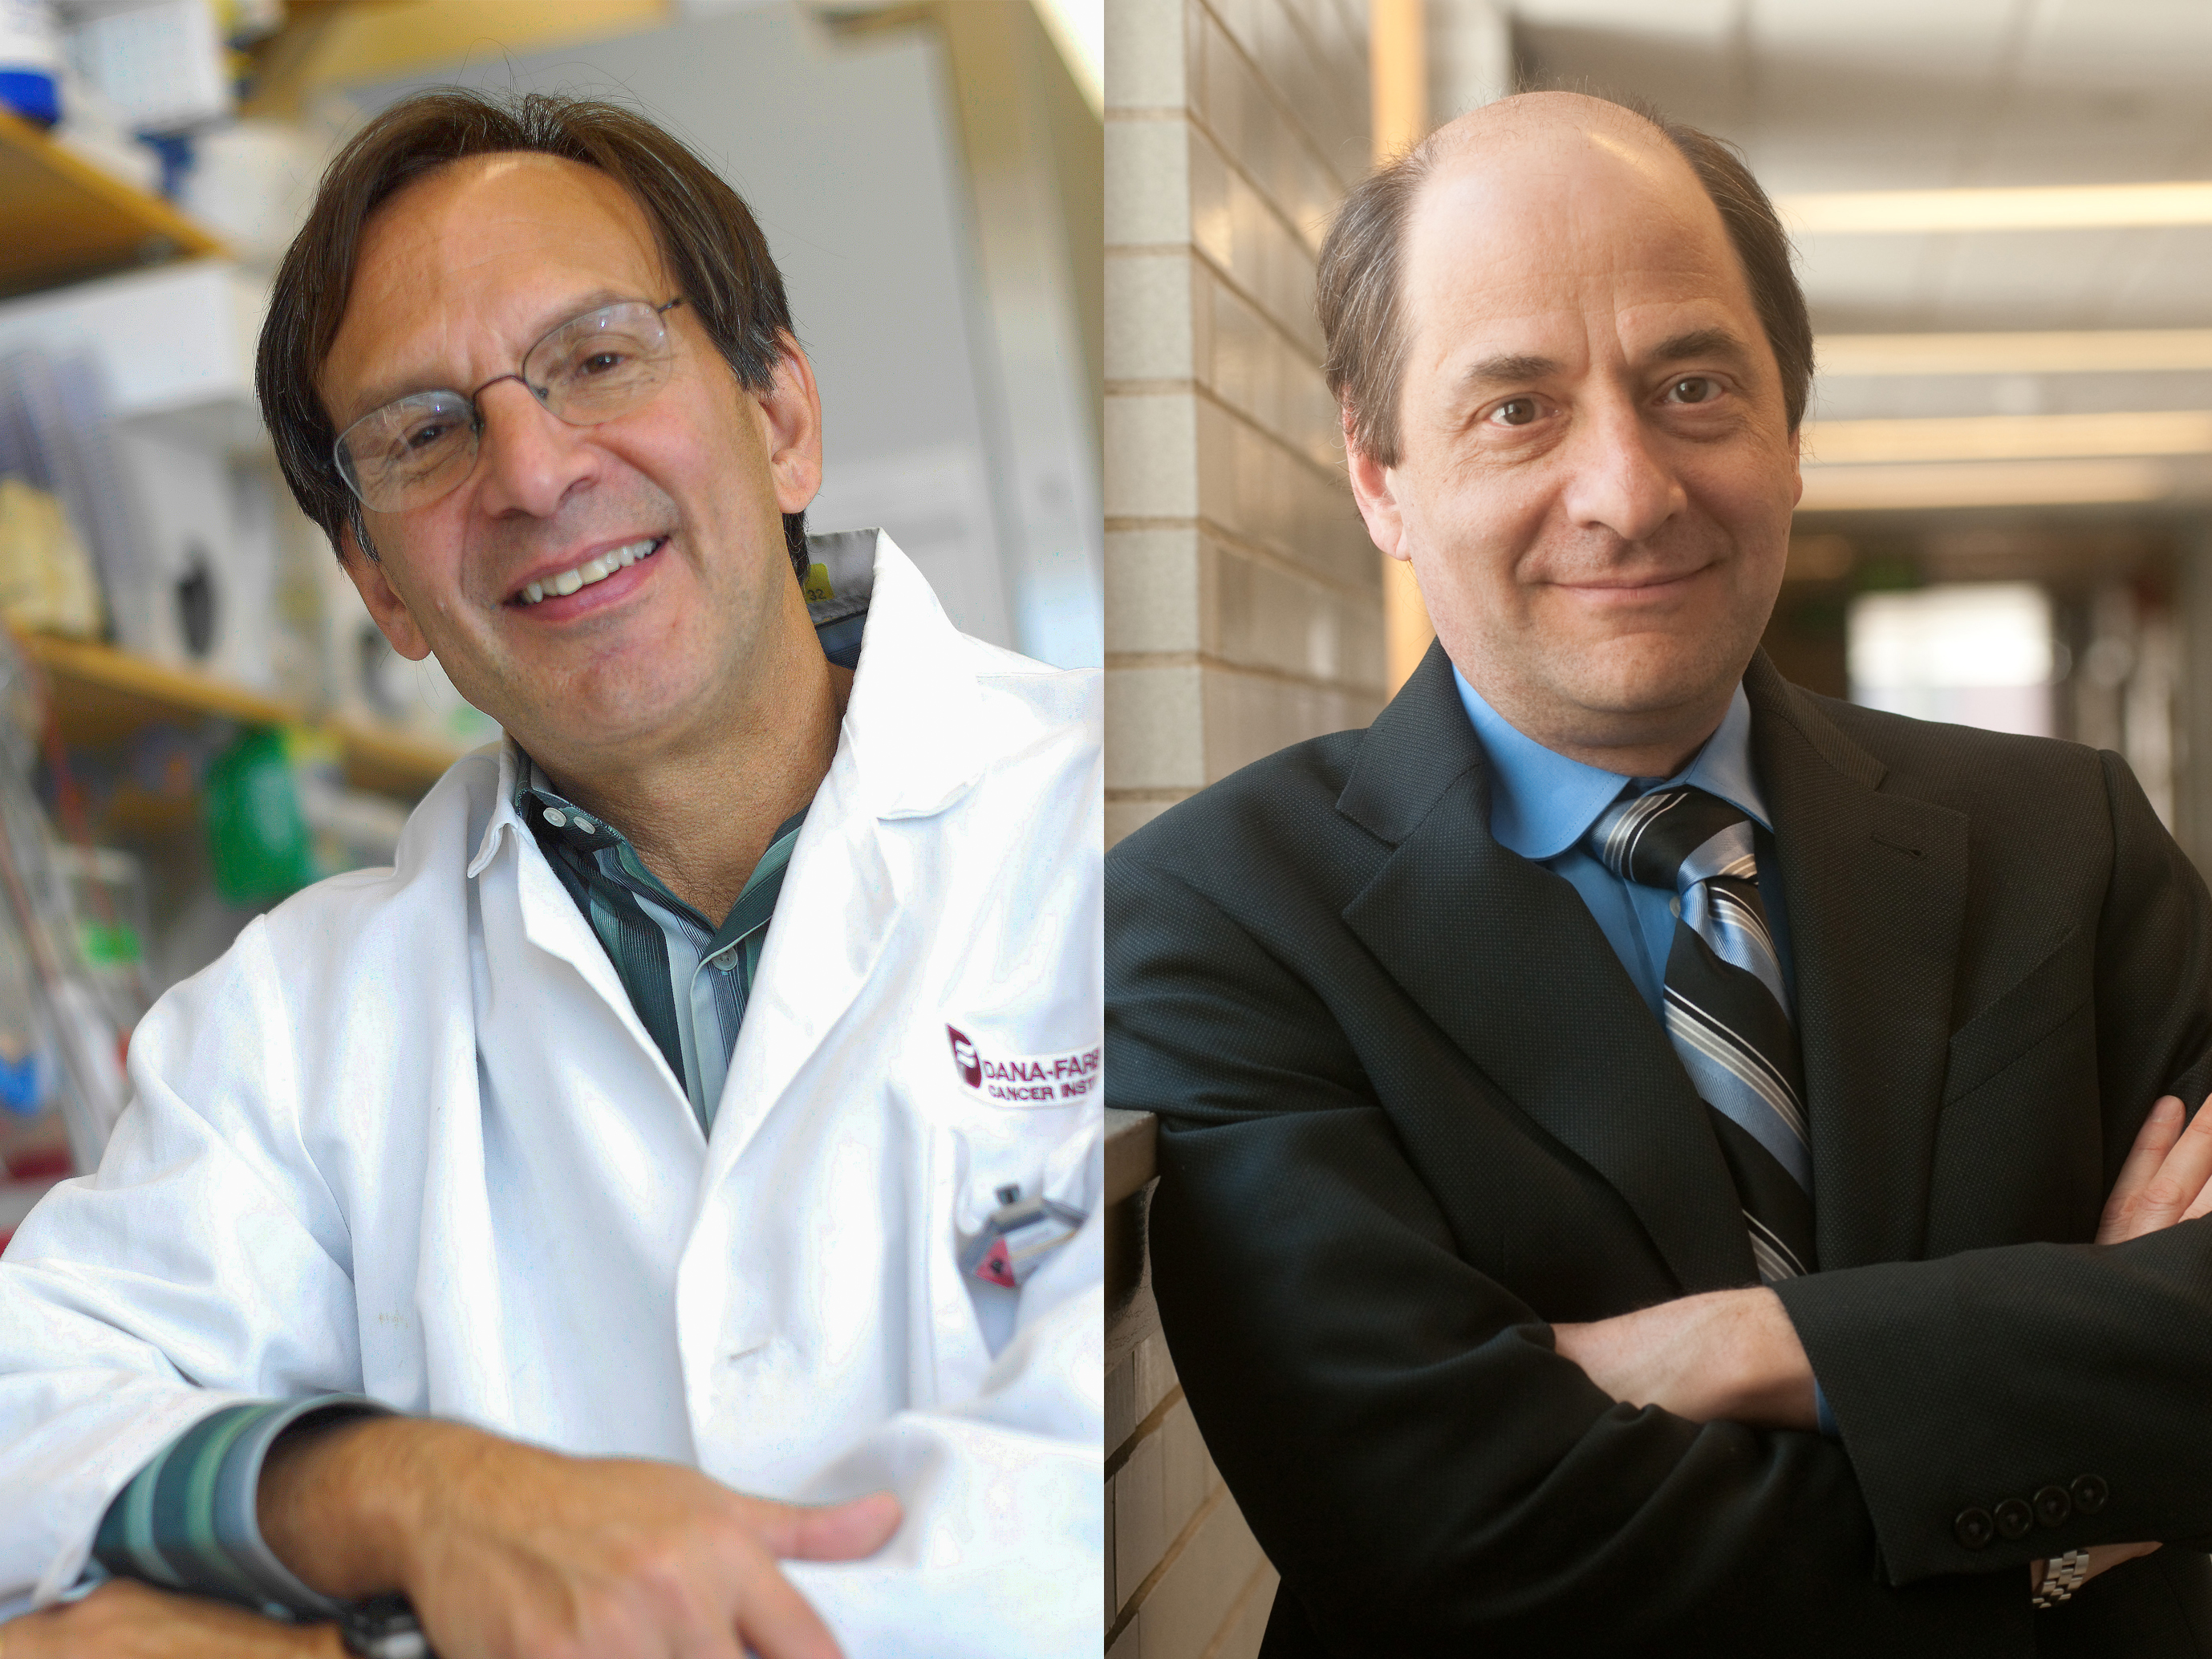 Dana-Farber researchers find exercise-induced brain growth protein ... 0d4fc3e2e951